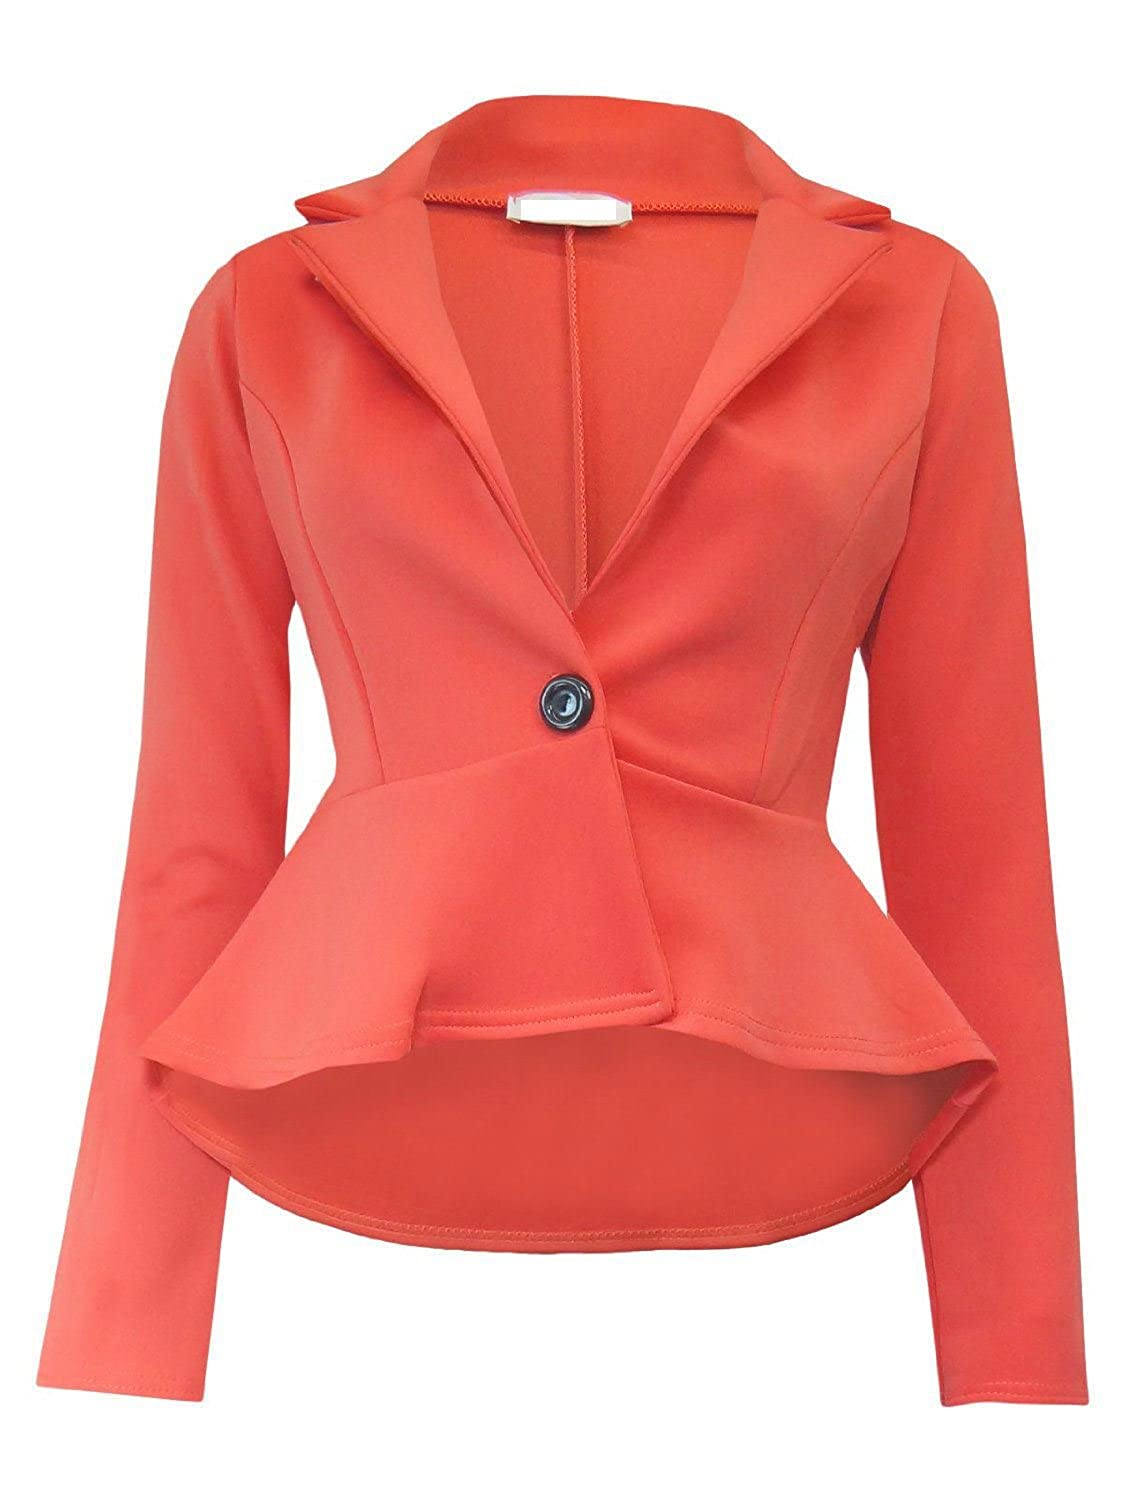 janisramone New Womens Crop Frill Shift Slim Fit Peplum Blazer Jacket Coat Ladies